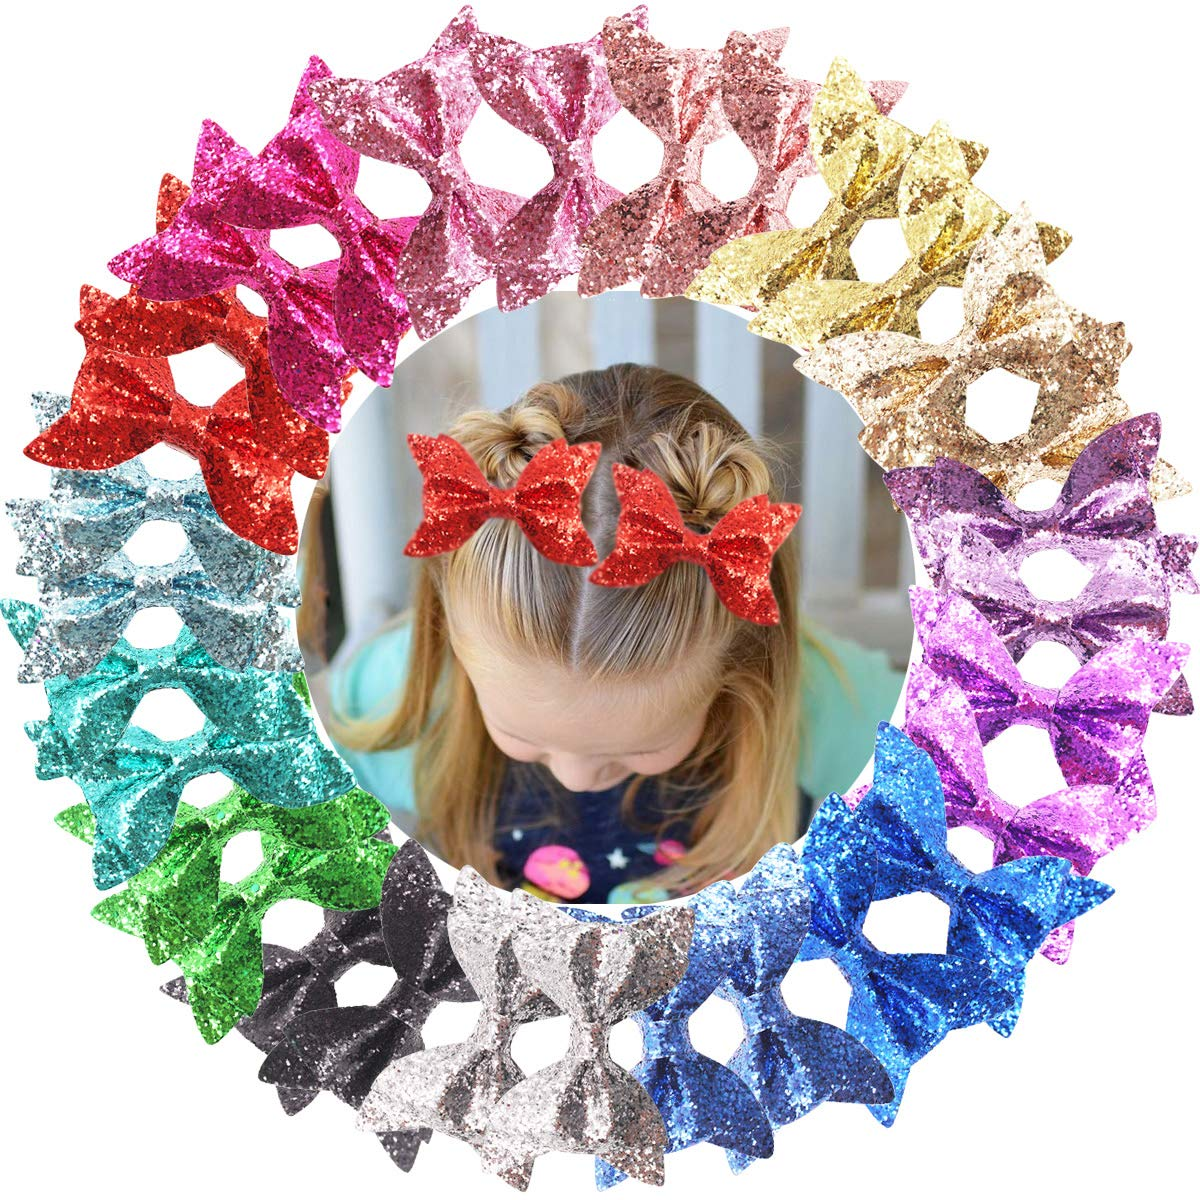 30PCS Baby Girls overseas Oakland Mall Glitter Hair Sparkly Clips 4.3Inch Bows